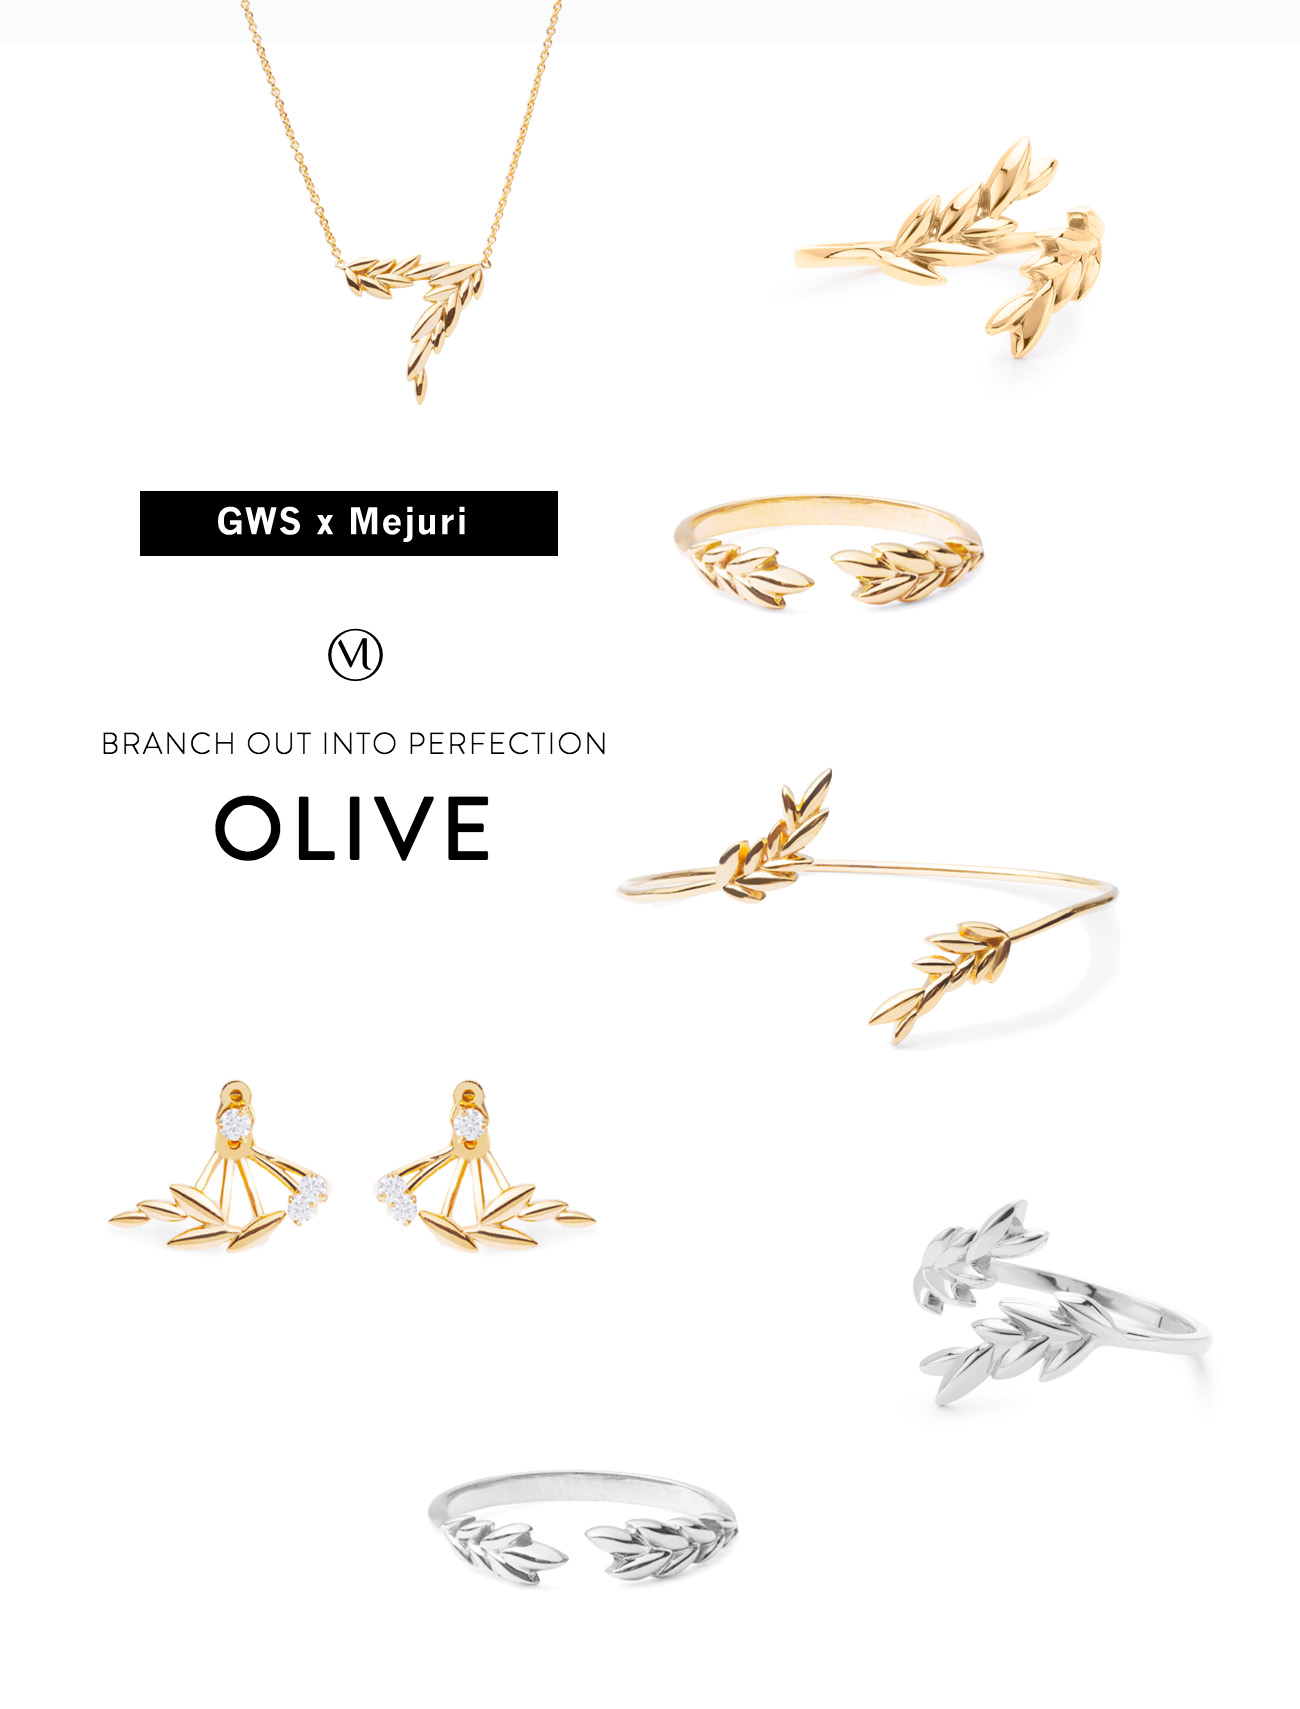 GWS x Mejuri Jewelry collection